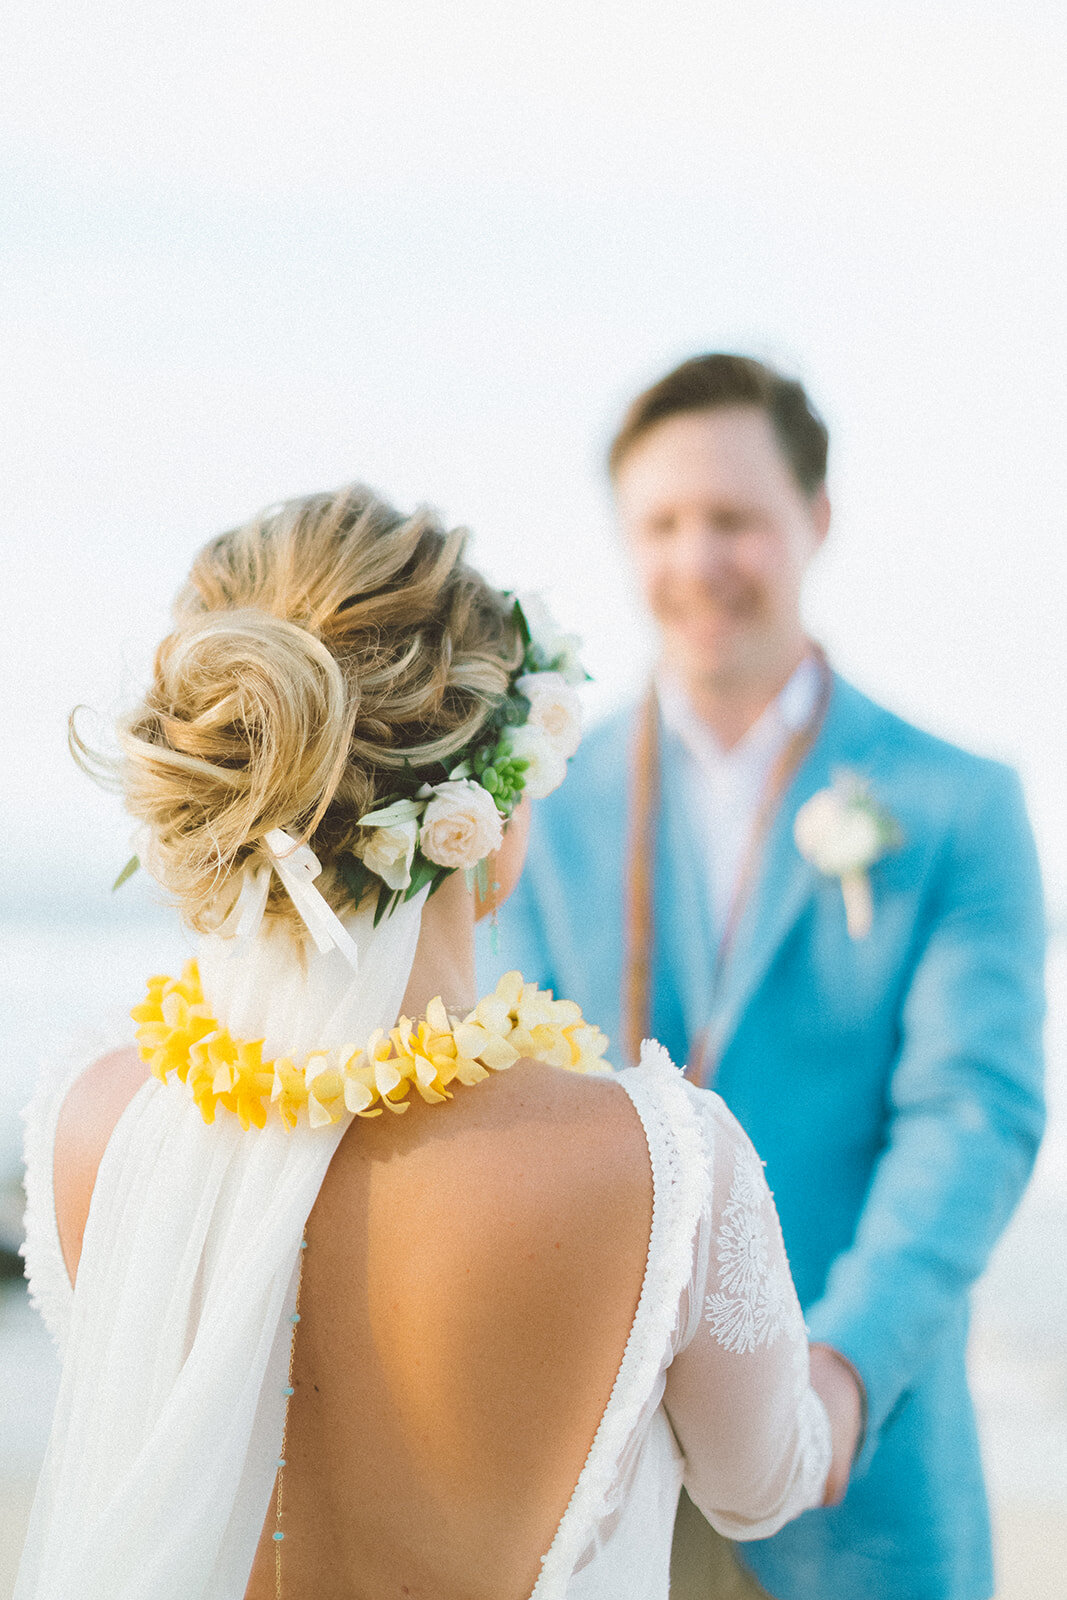 Maui wedding photographer20181126_0023.jpg